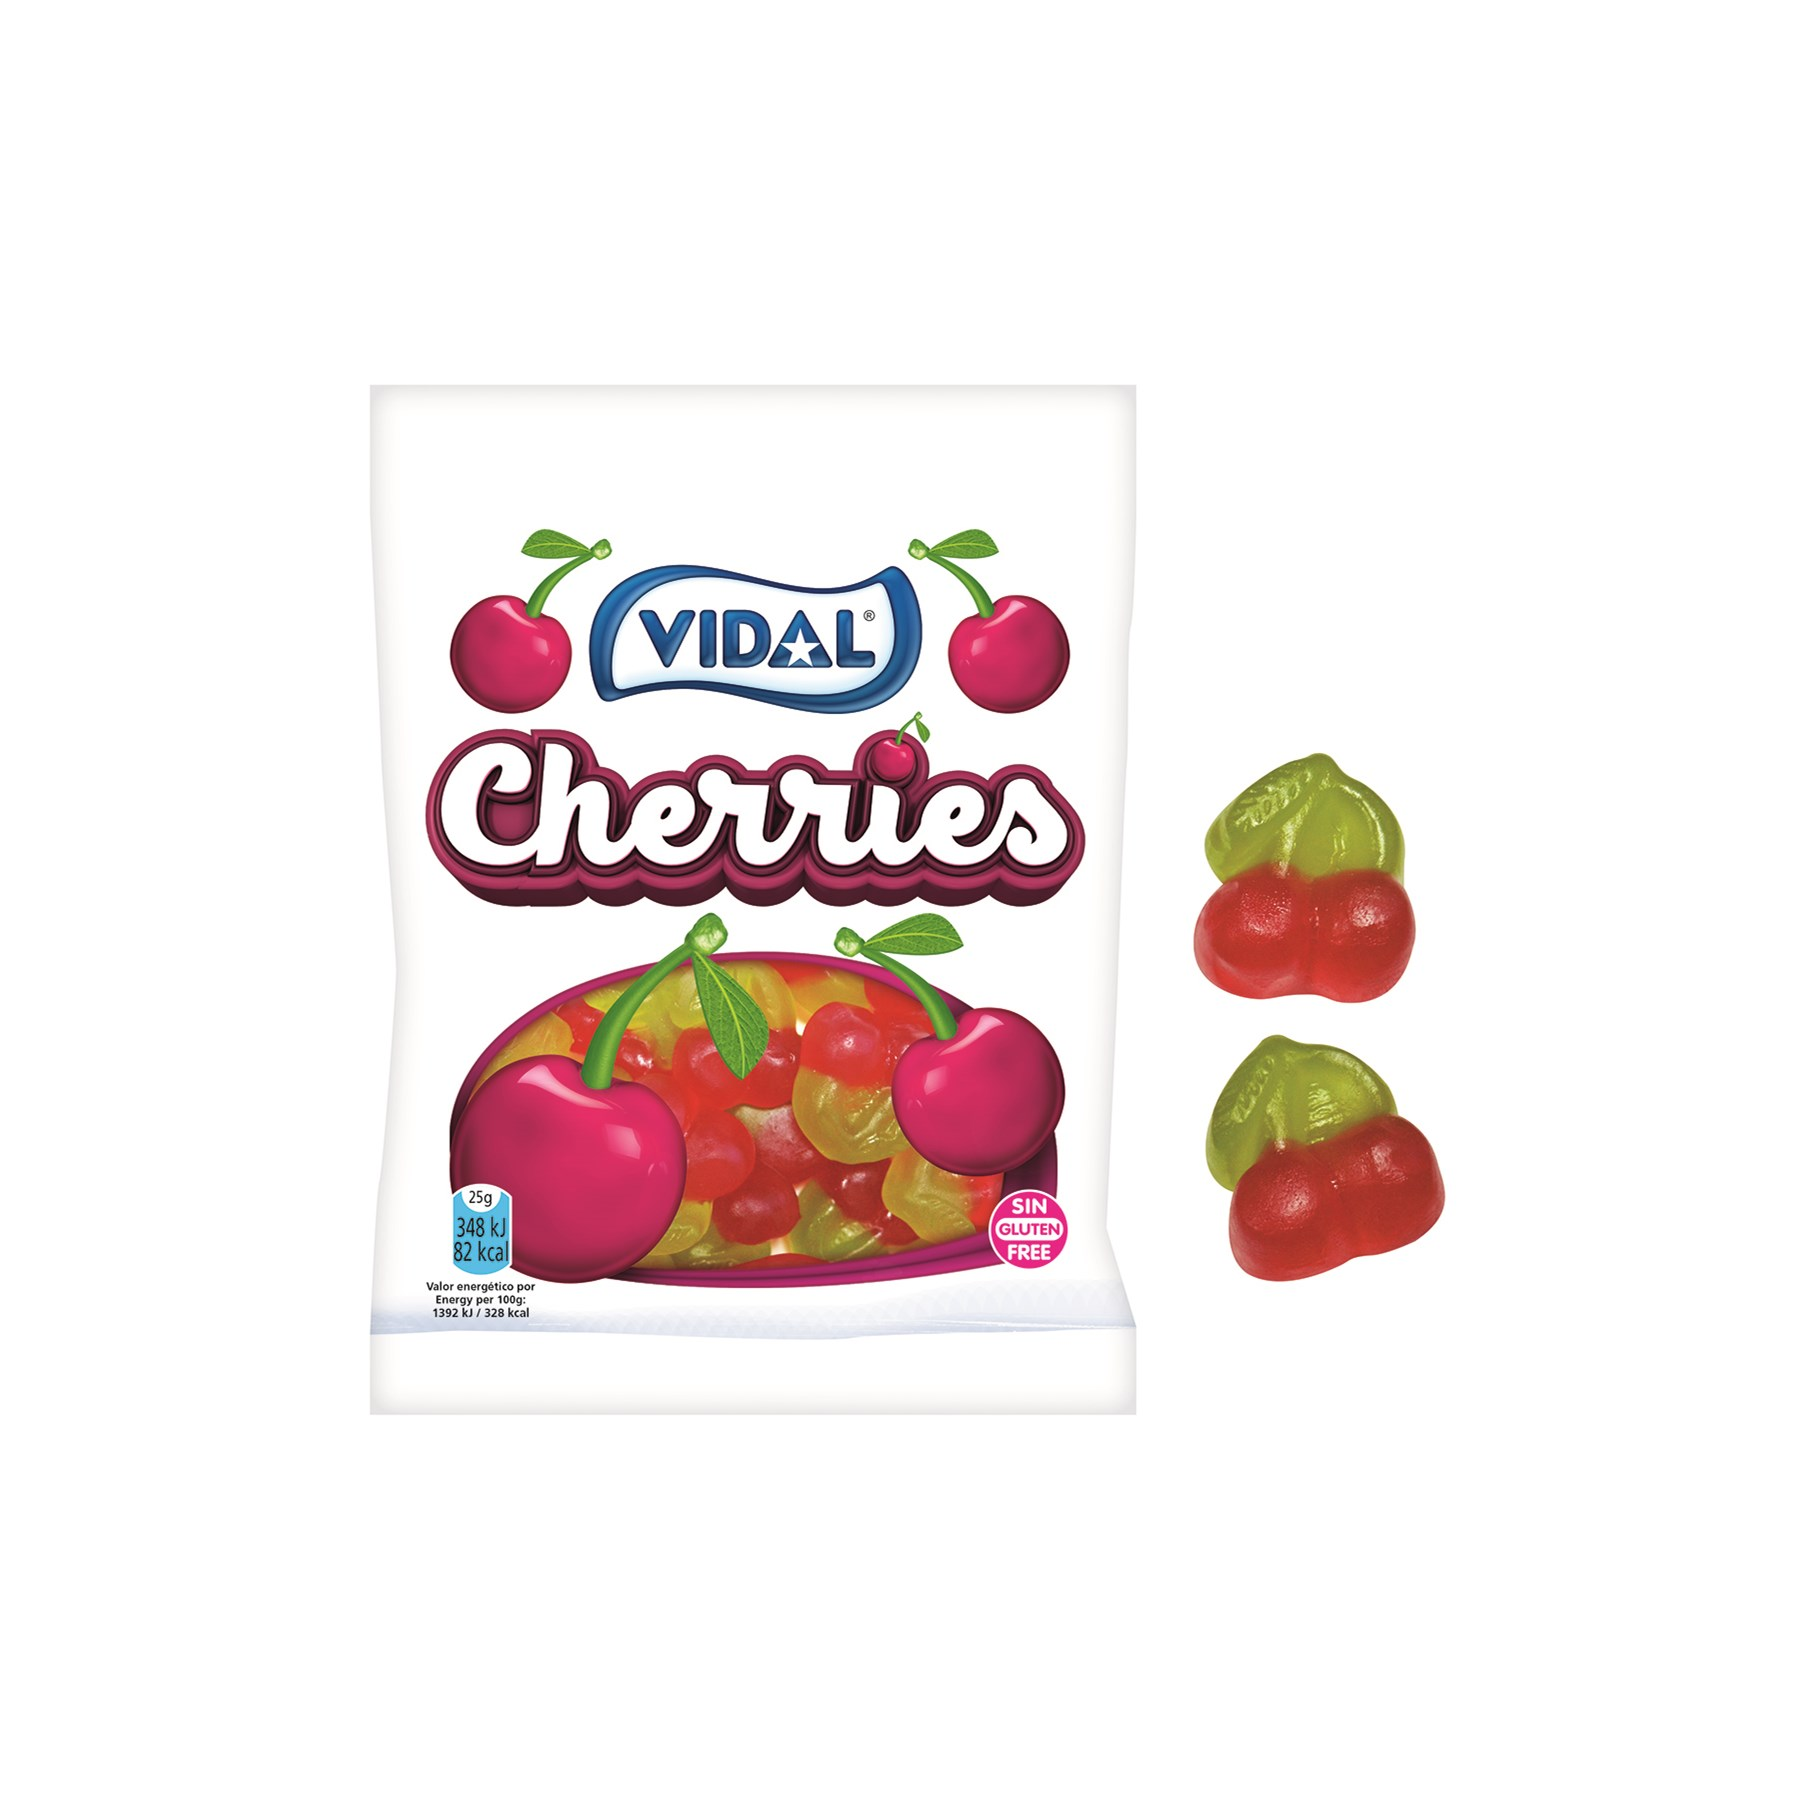 Vidal Cherries 100g (1016816)